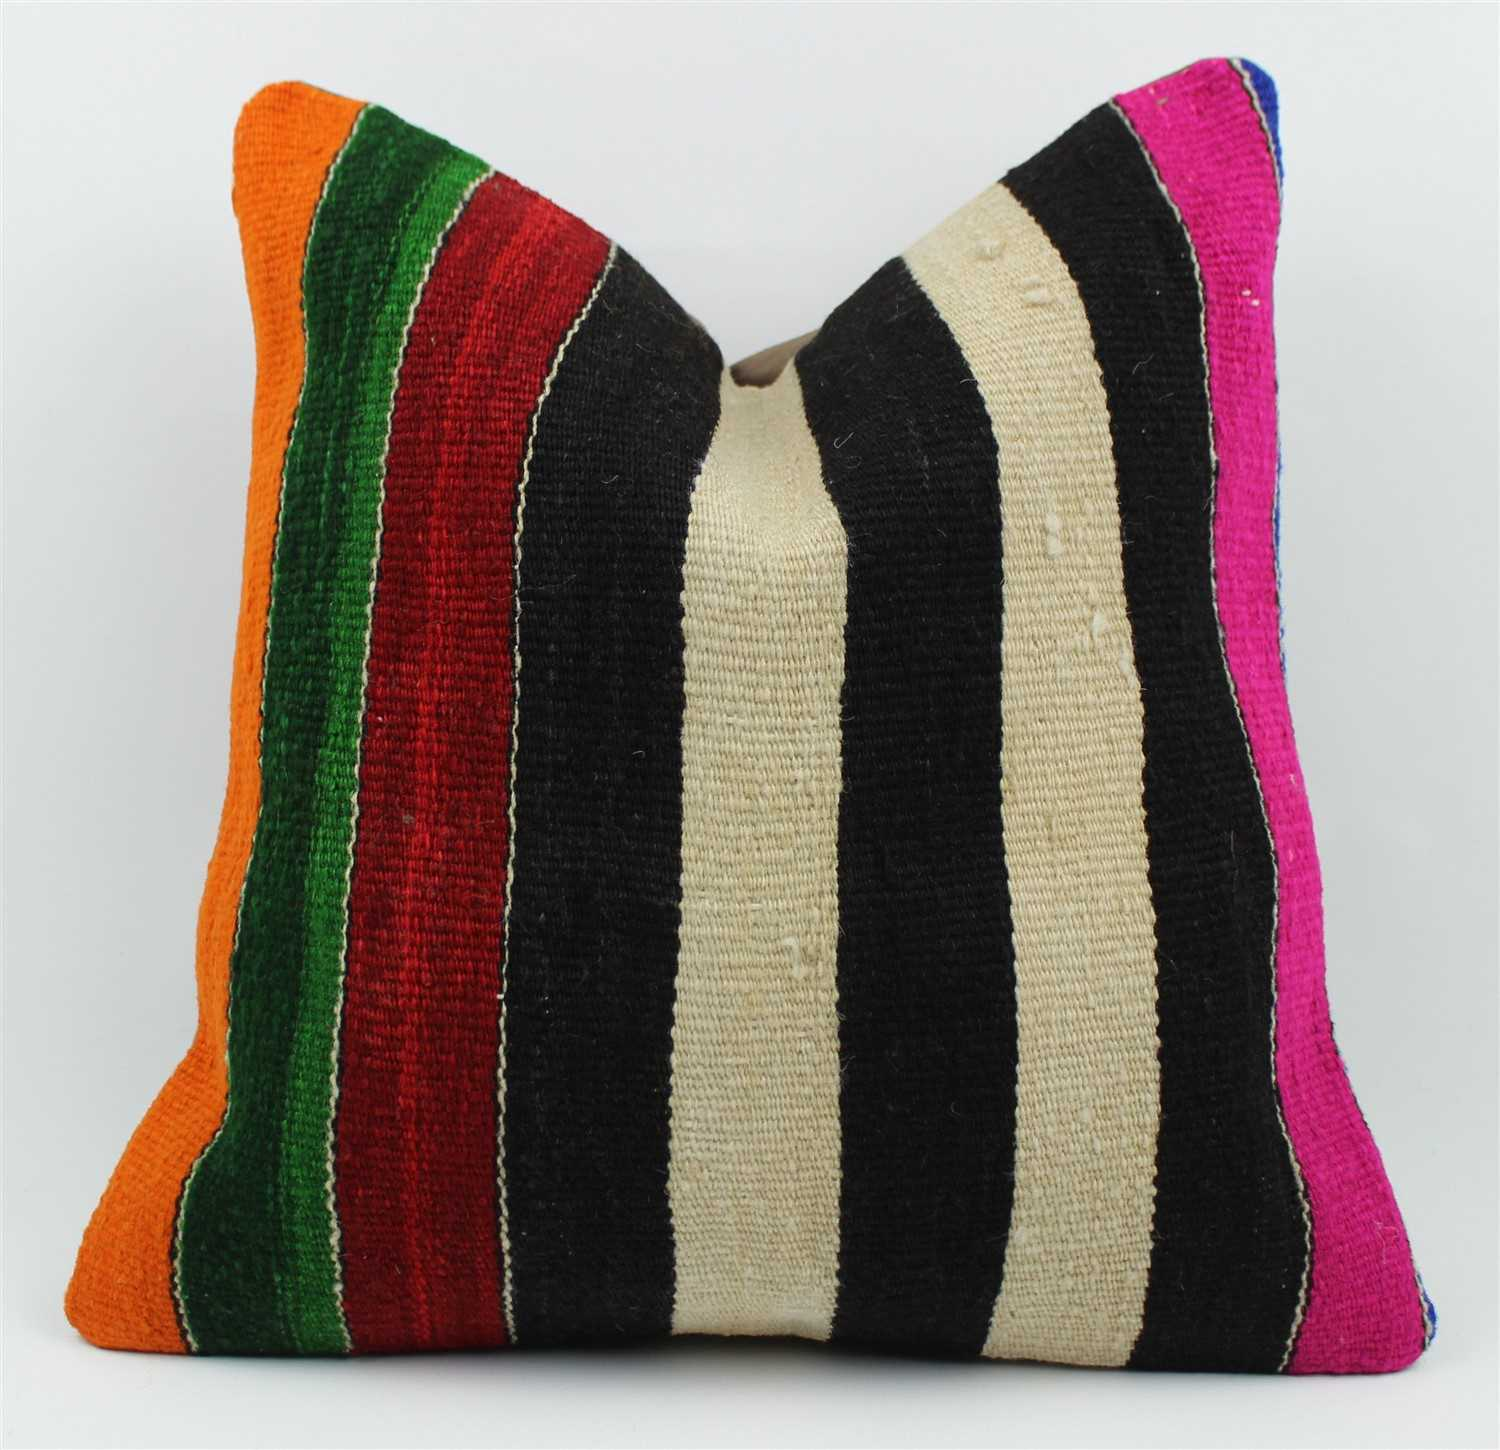 collections from pillowcase turkish imports handwoven closure bolster kilims made zipper zuma not insert vintage recycled pillow pillows kilim kilimpillow